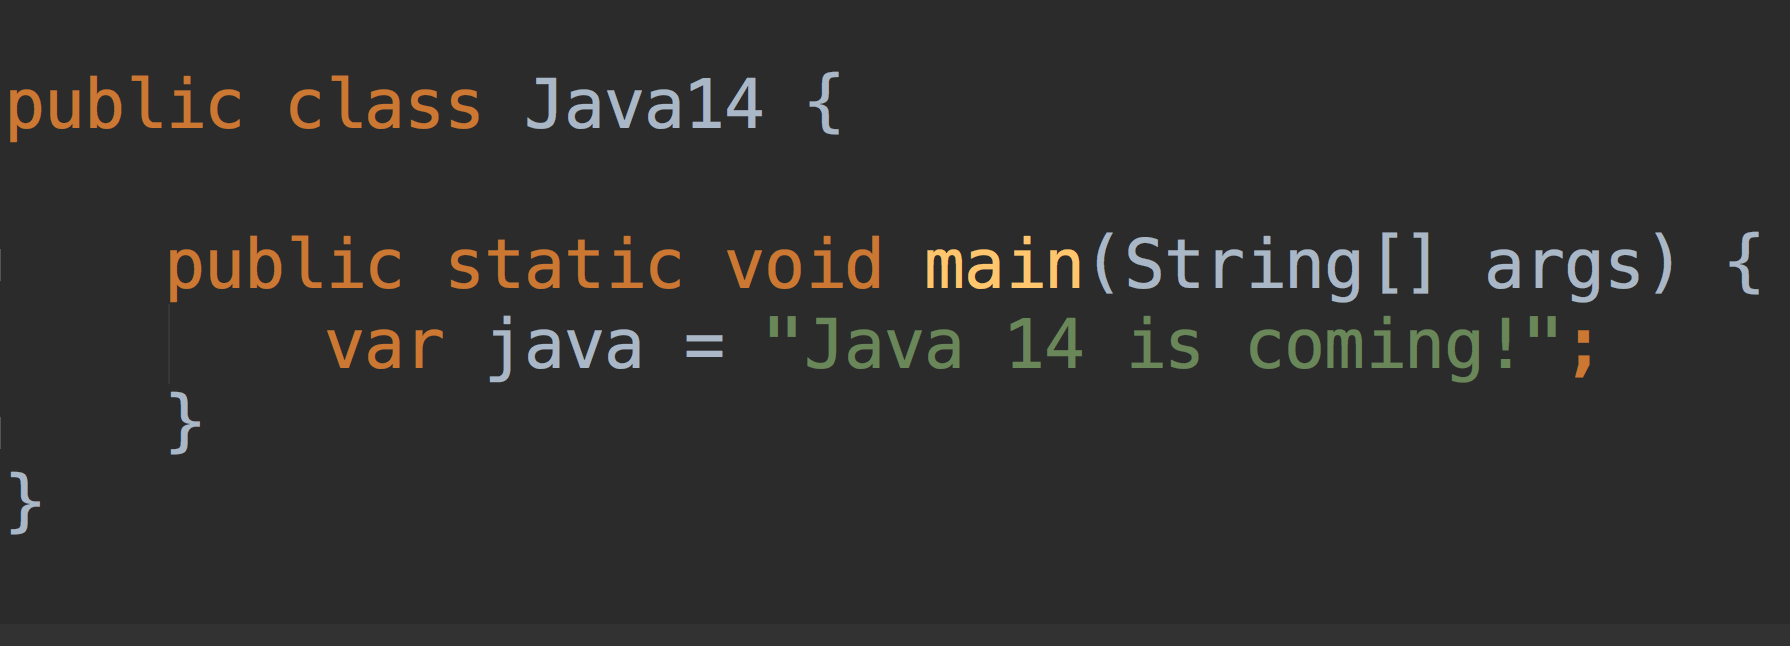 Java 14 is coming - 1